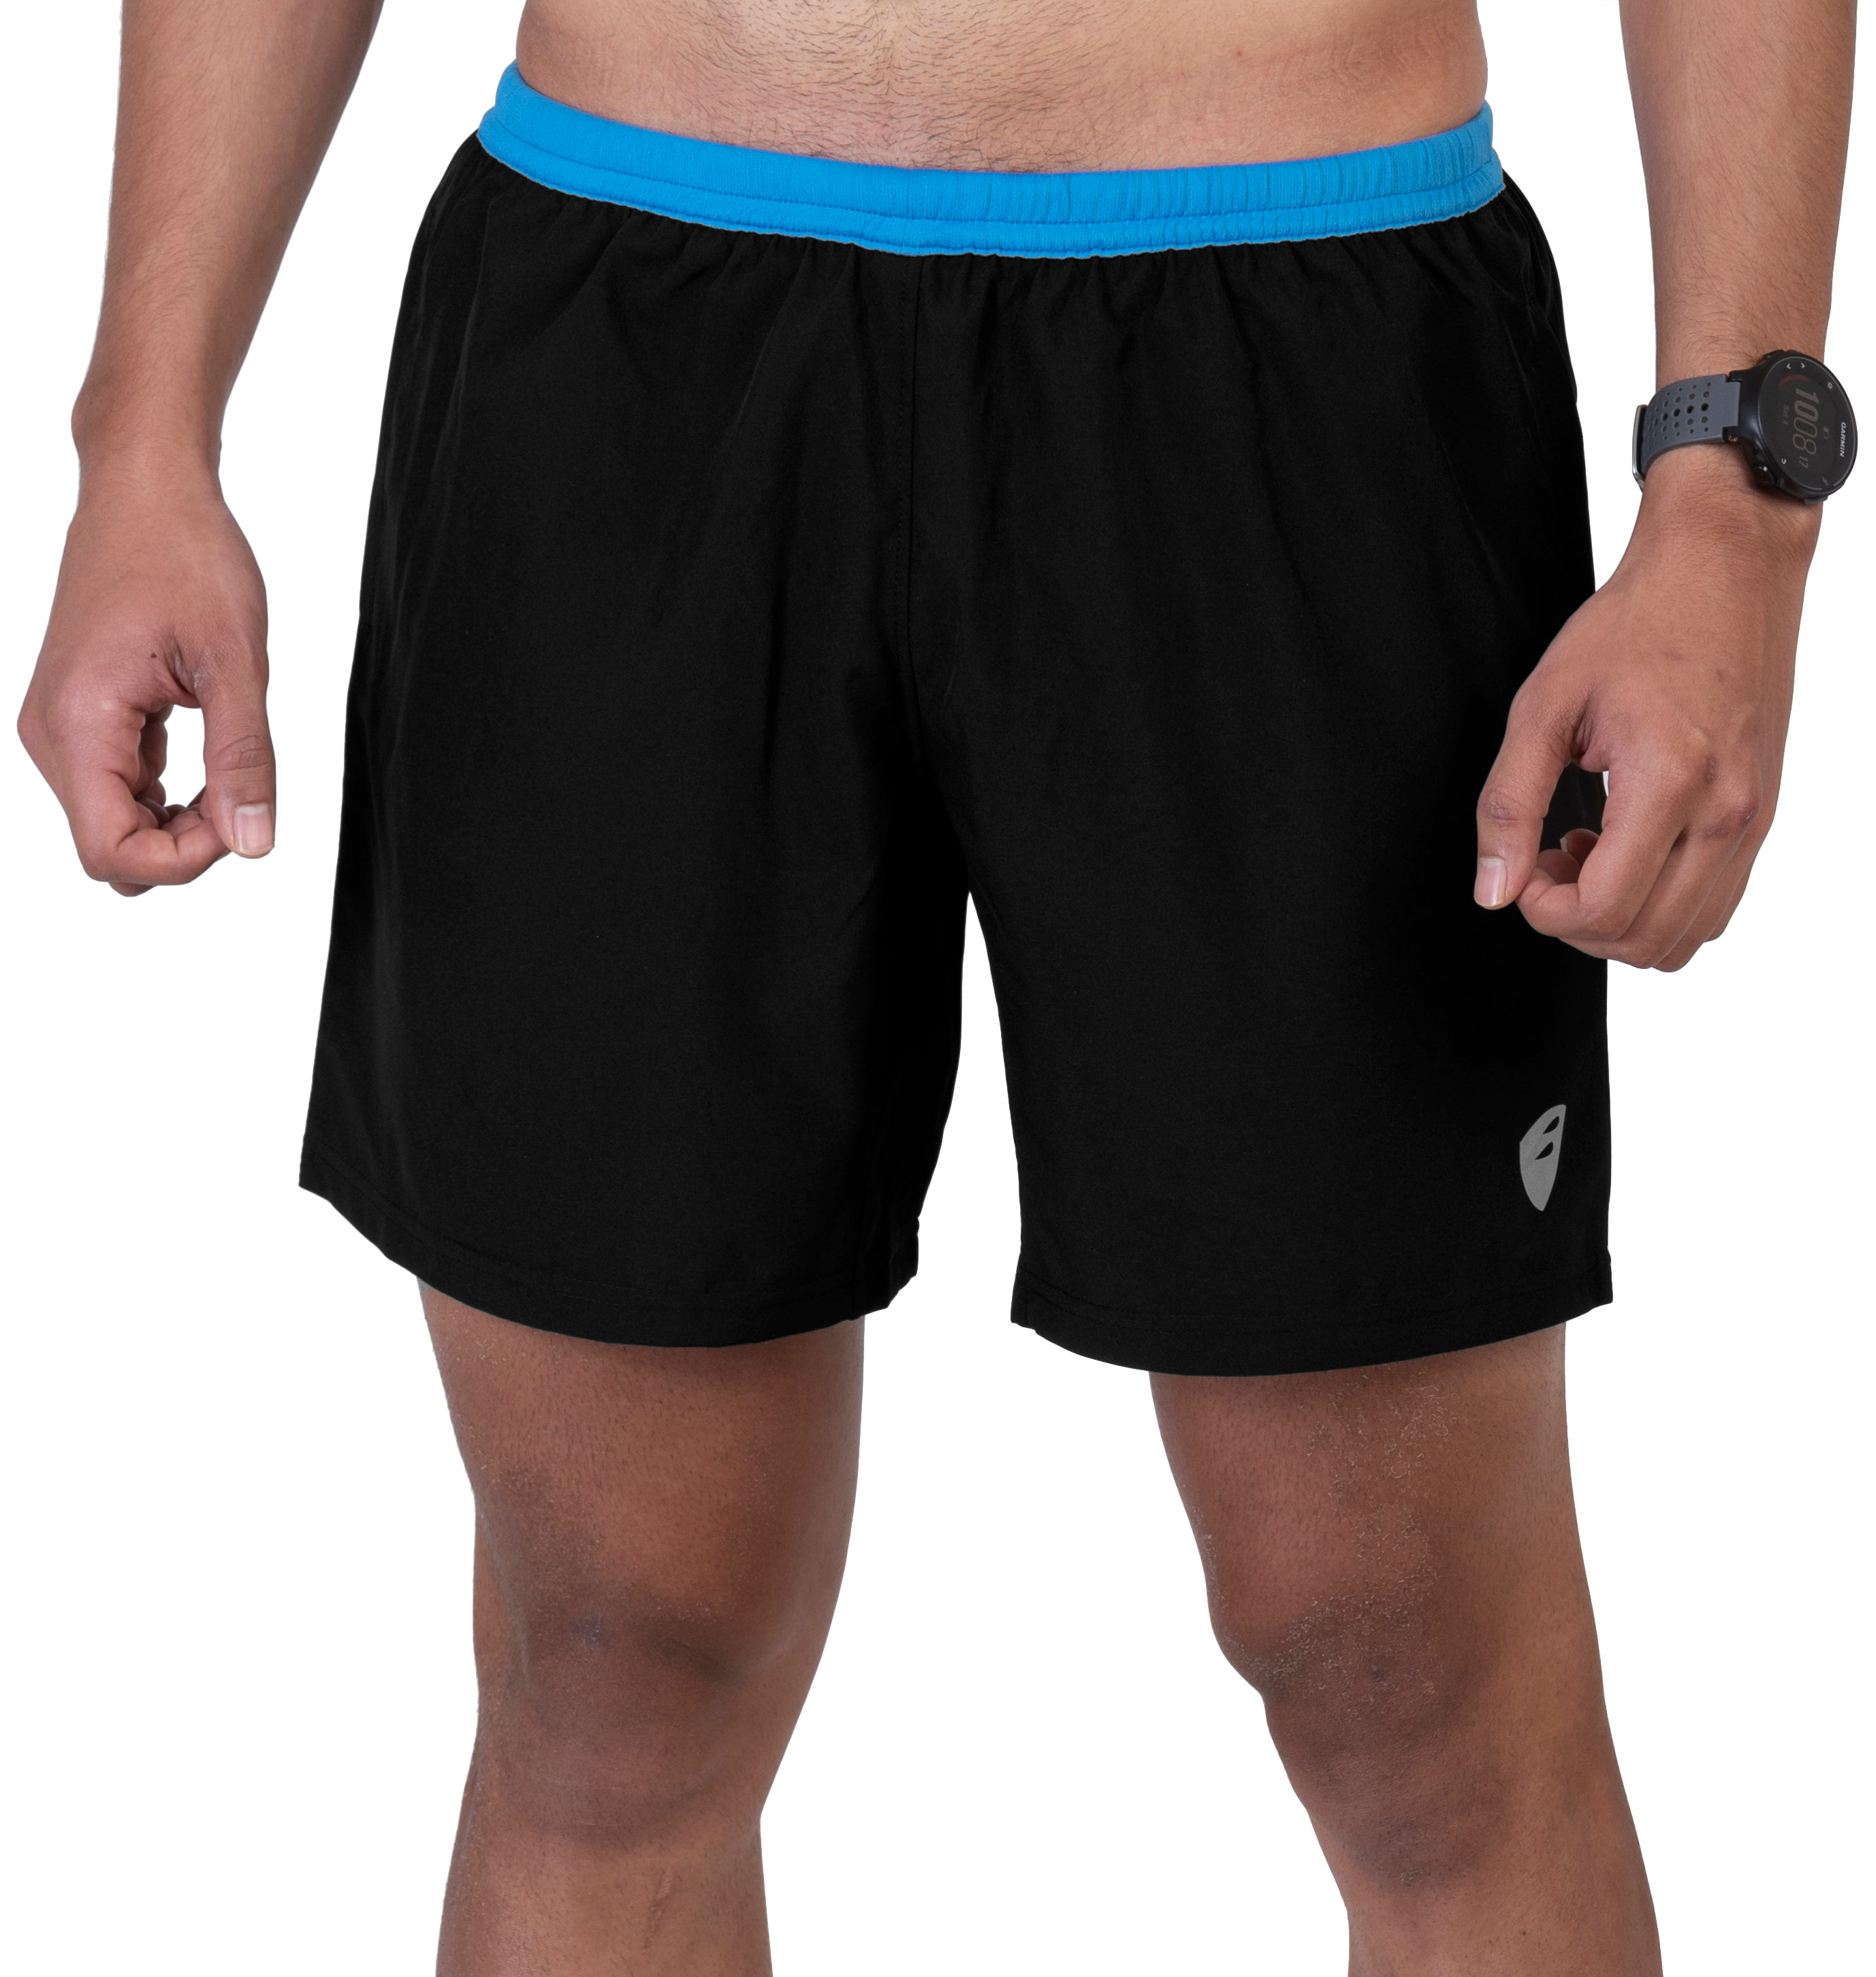 Apace 2017 Tempo - Mens Running Shorts - Black